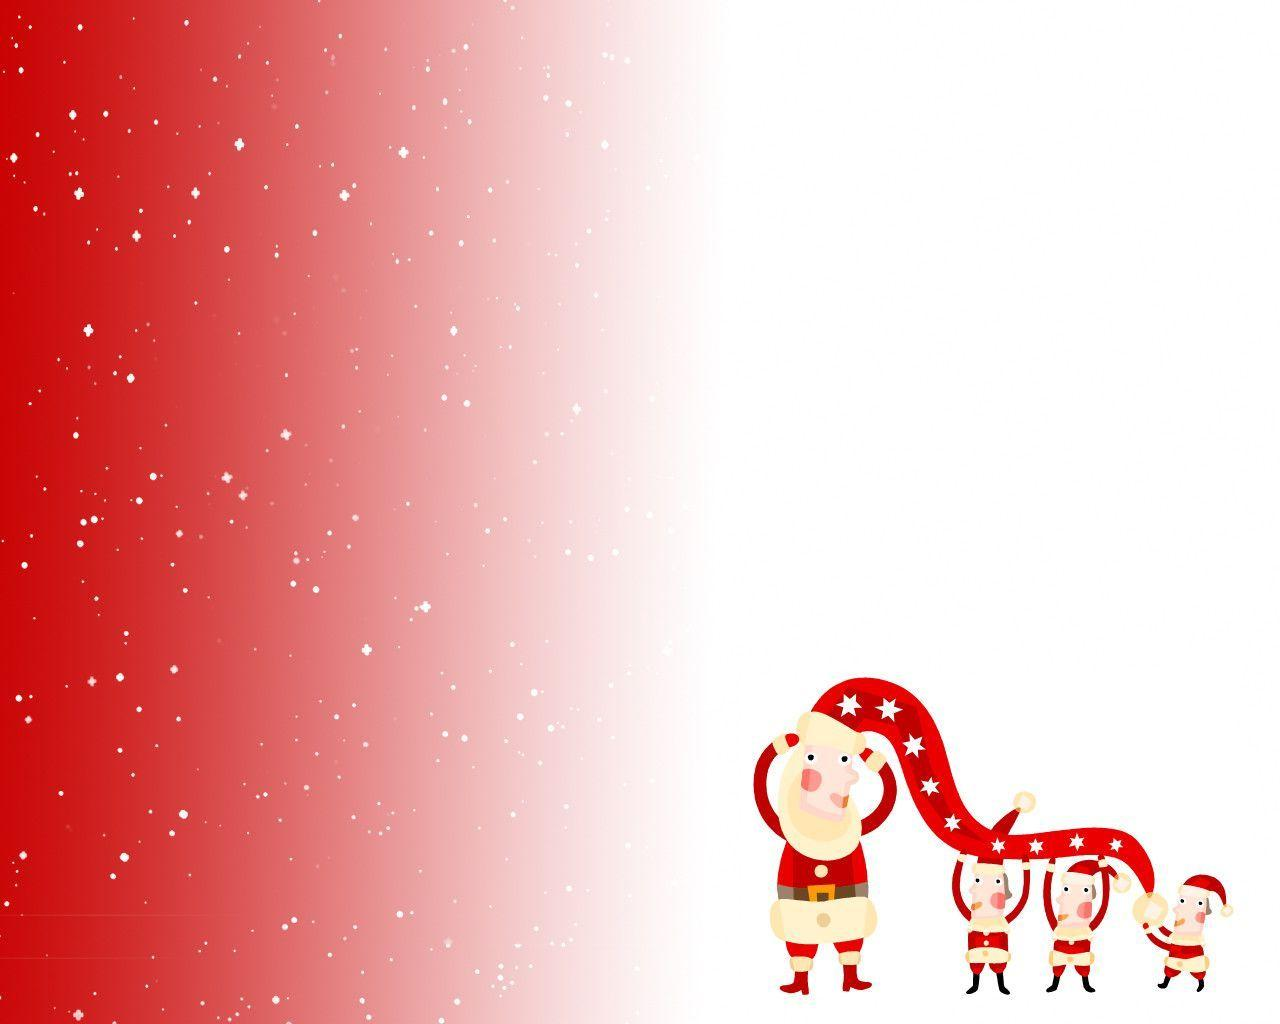 Cute Christmas Wallpapers - Wallpaper Cave